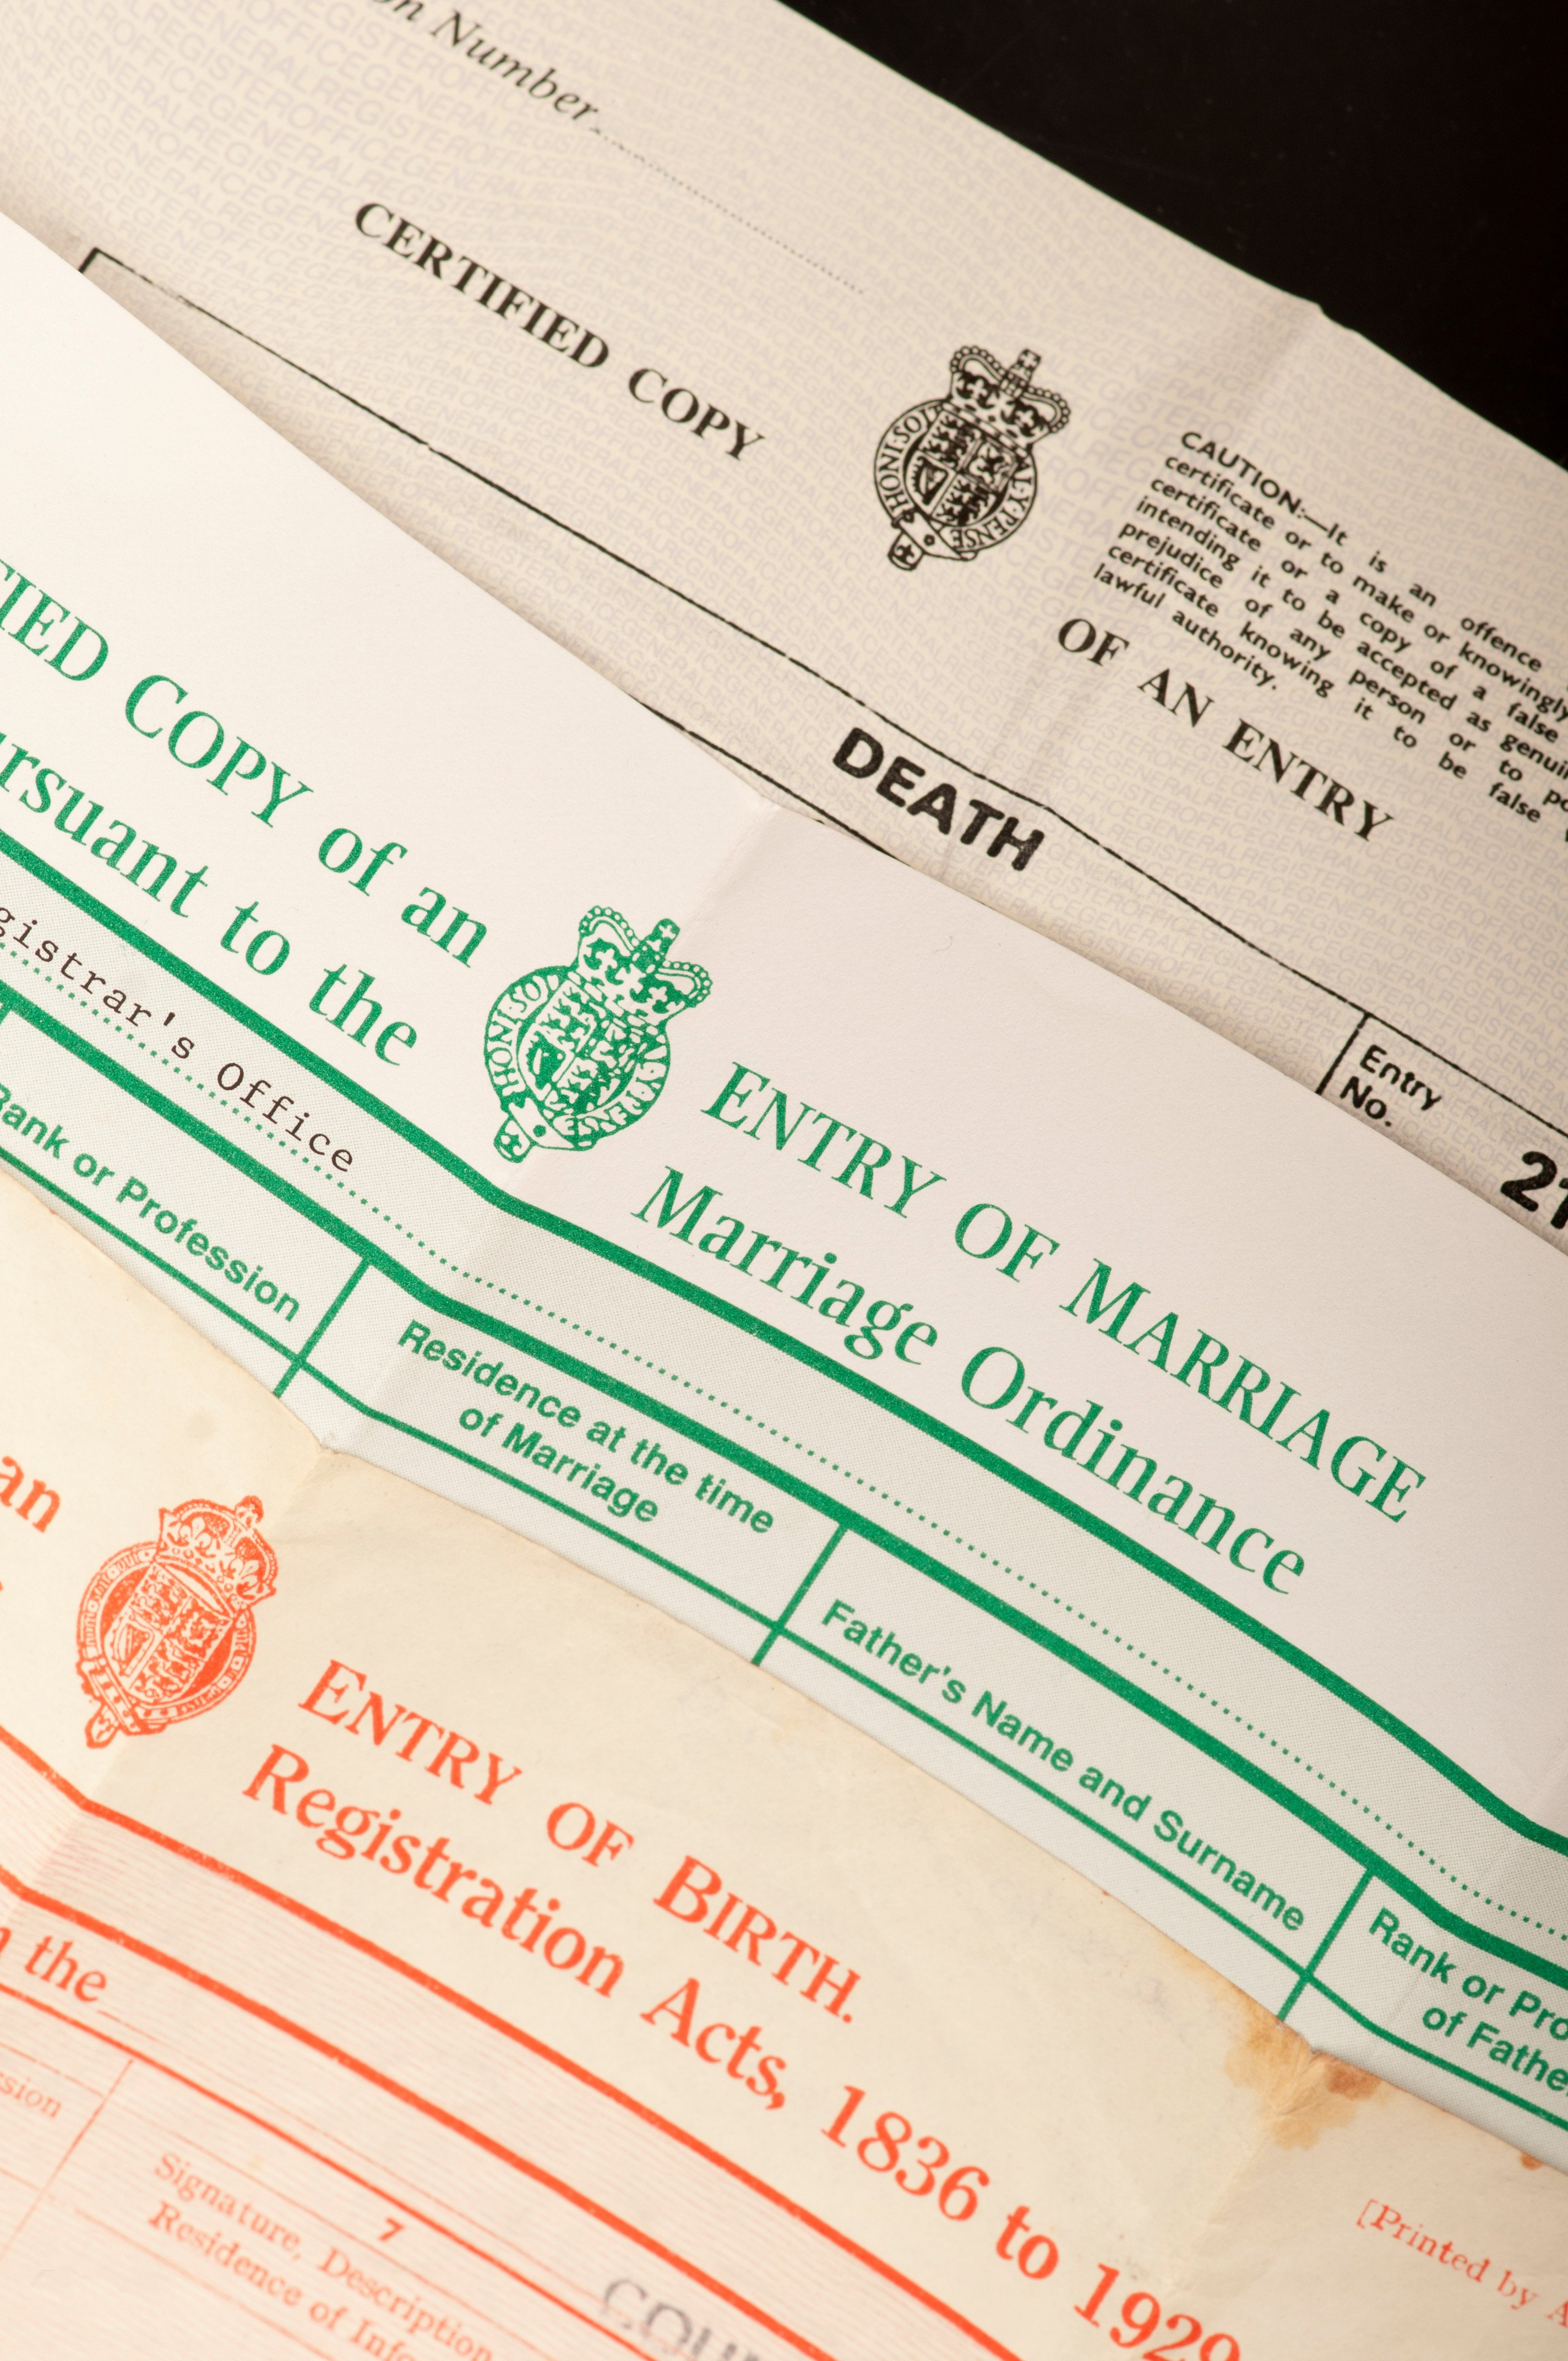 Cost of marriage, birth and death certificates to triple to £11 each